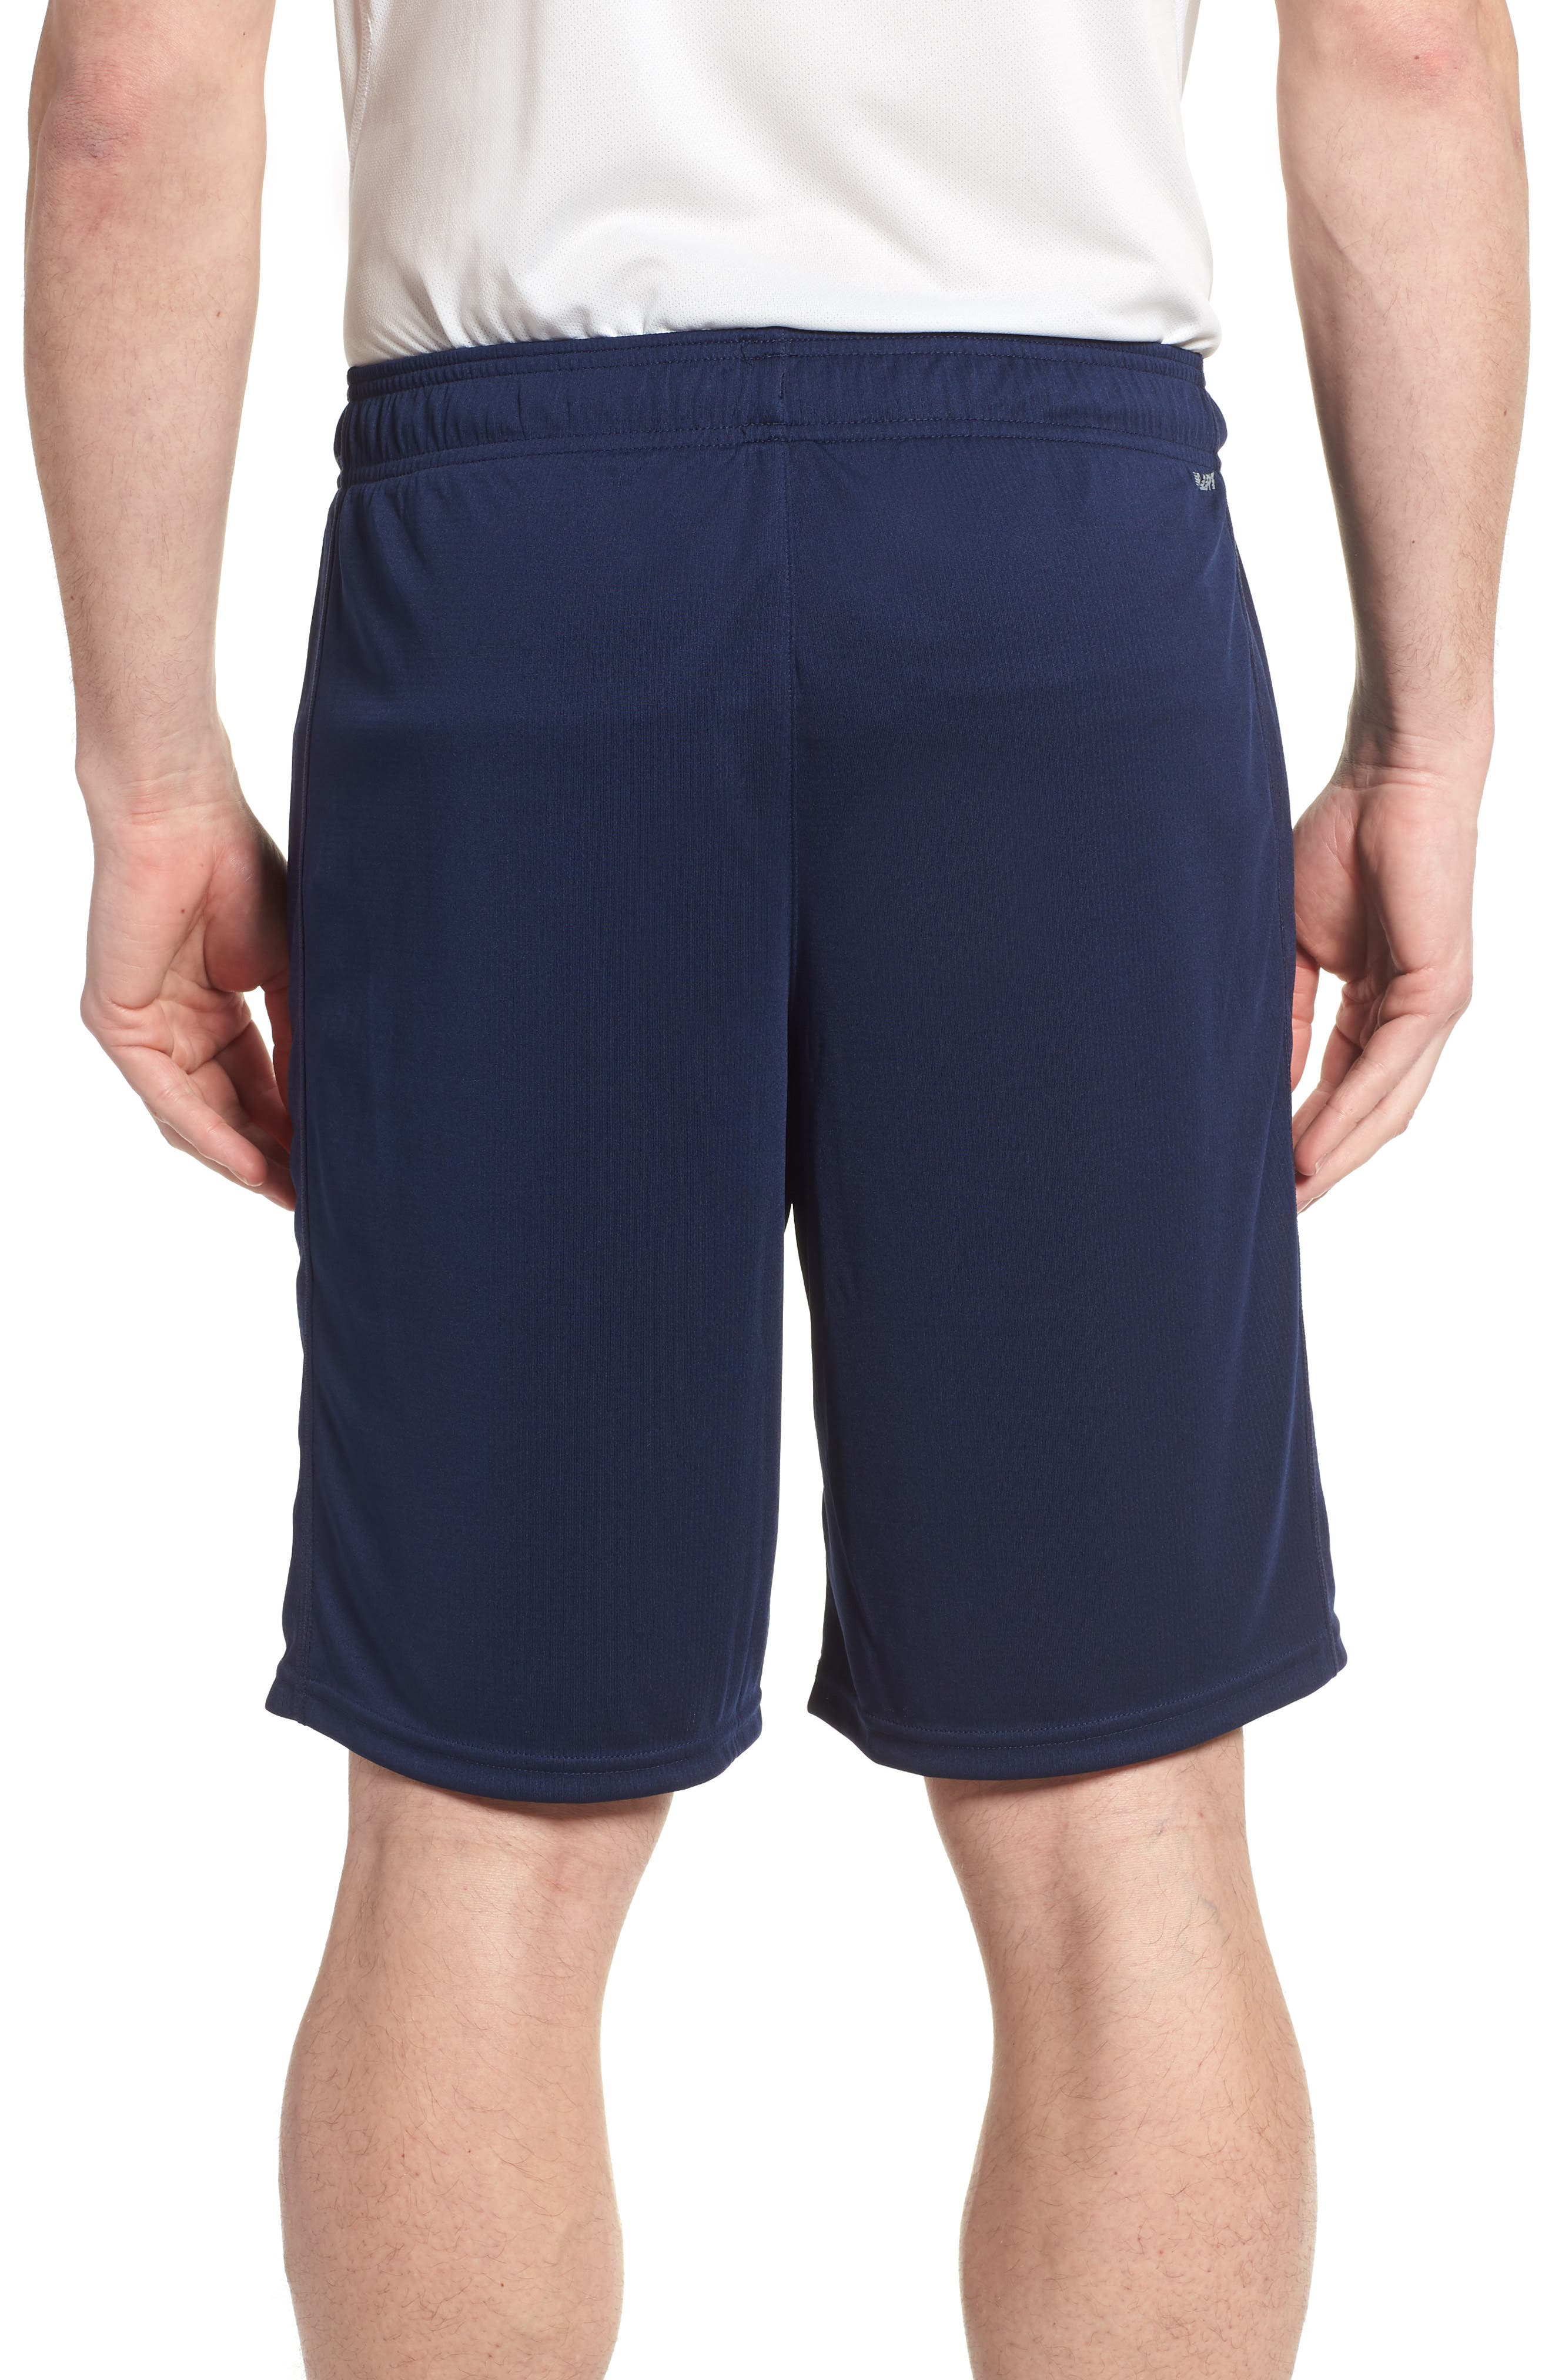 Versa Shorts,                             Alternate thumbnail 2, color,                             PIGMENT